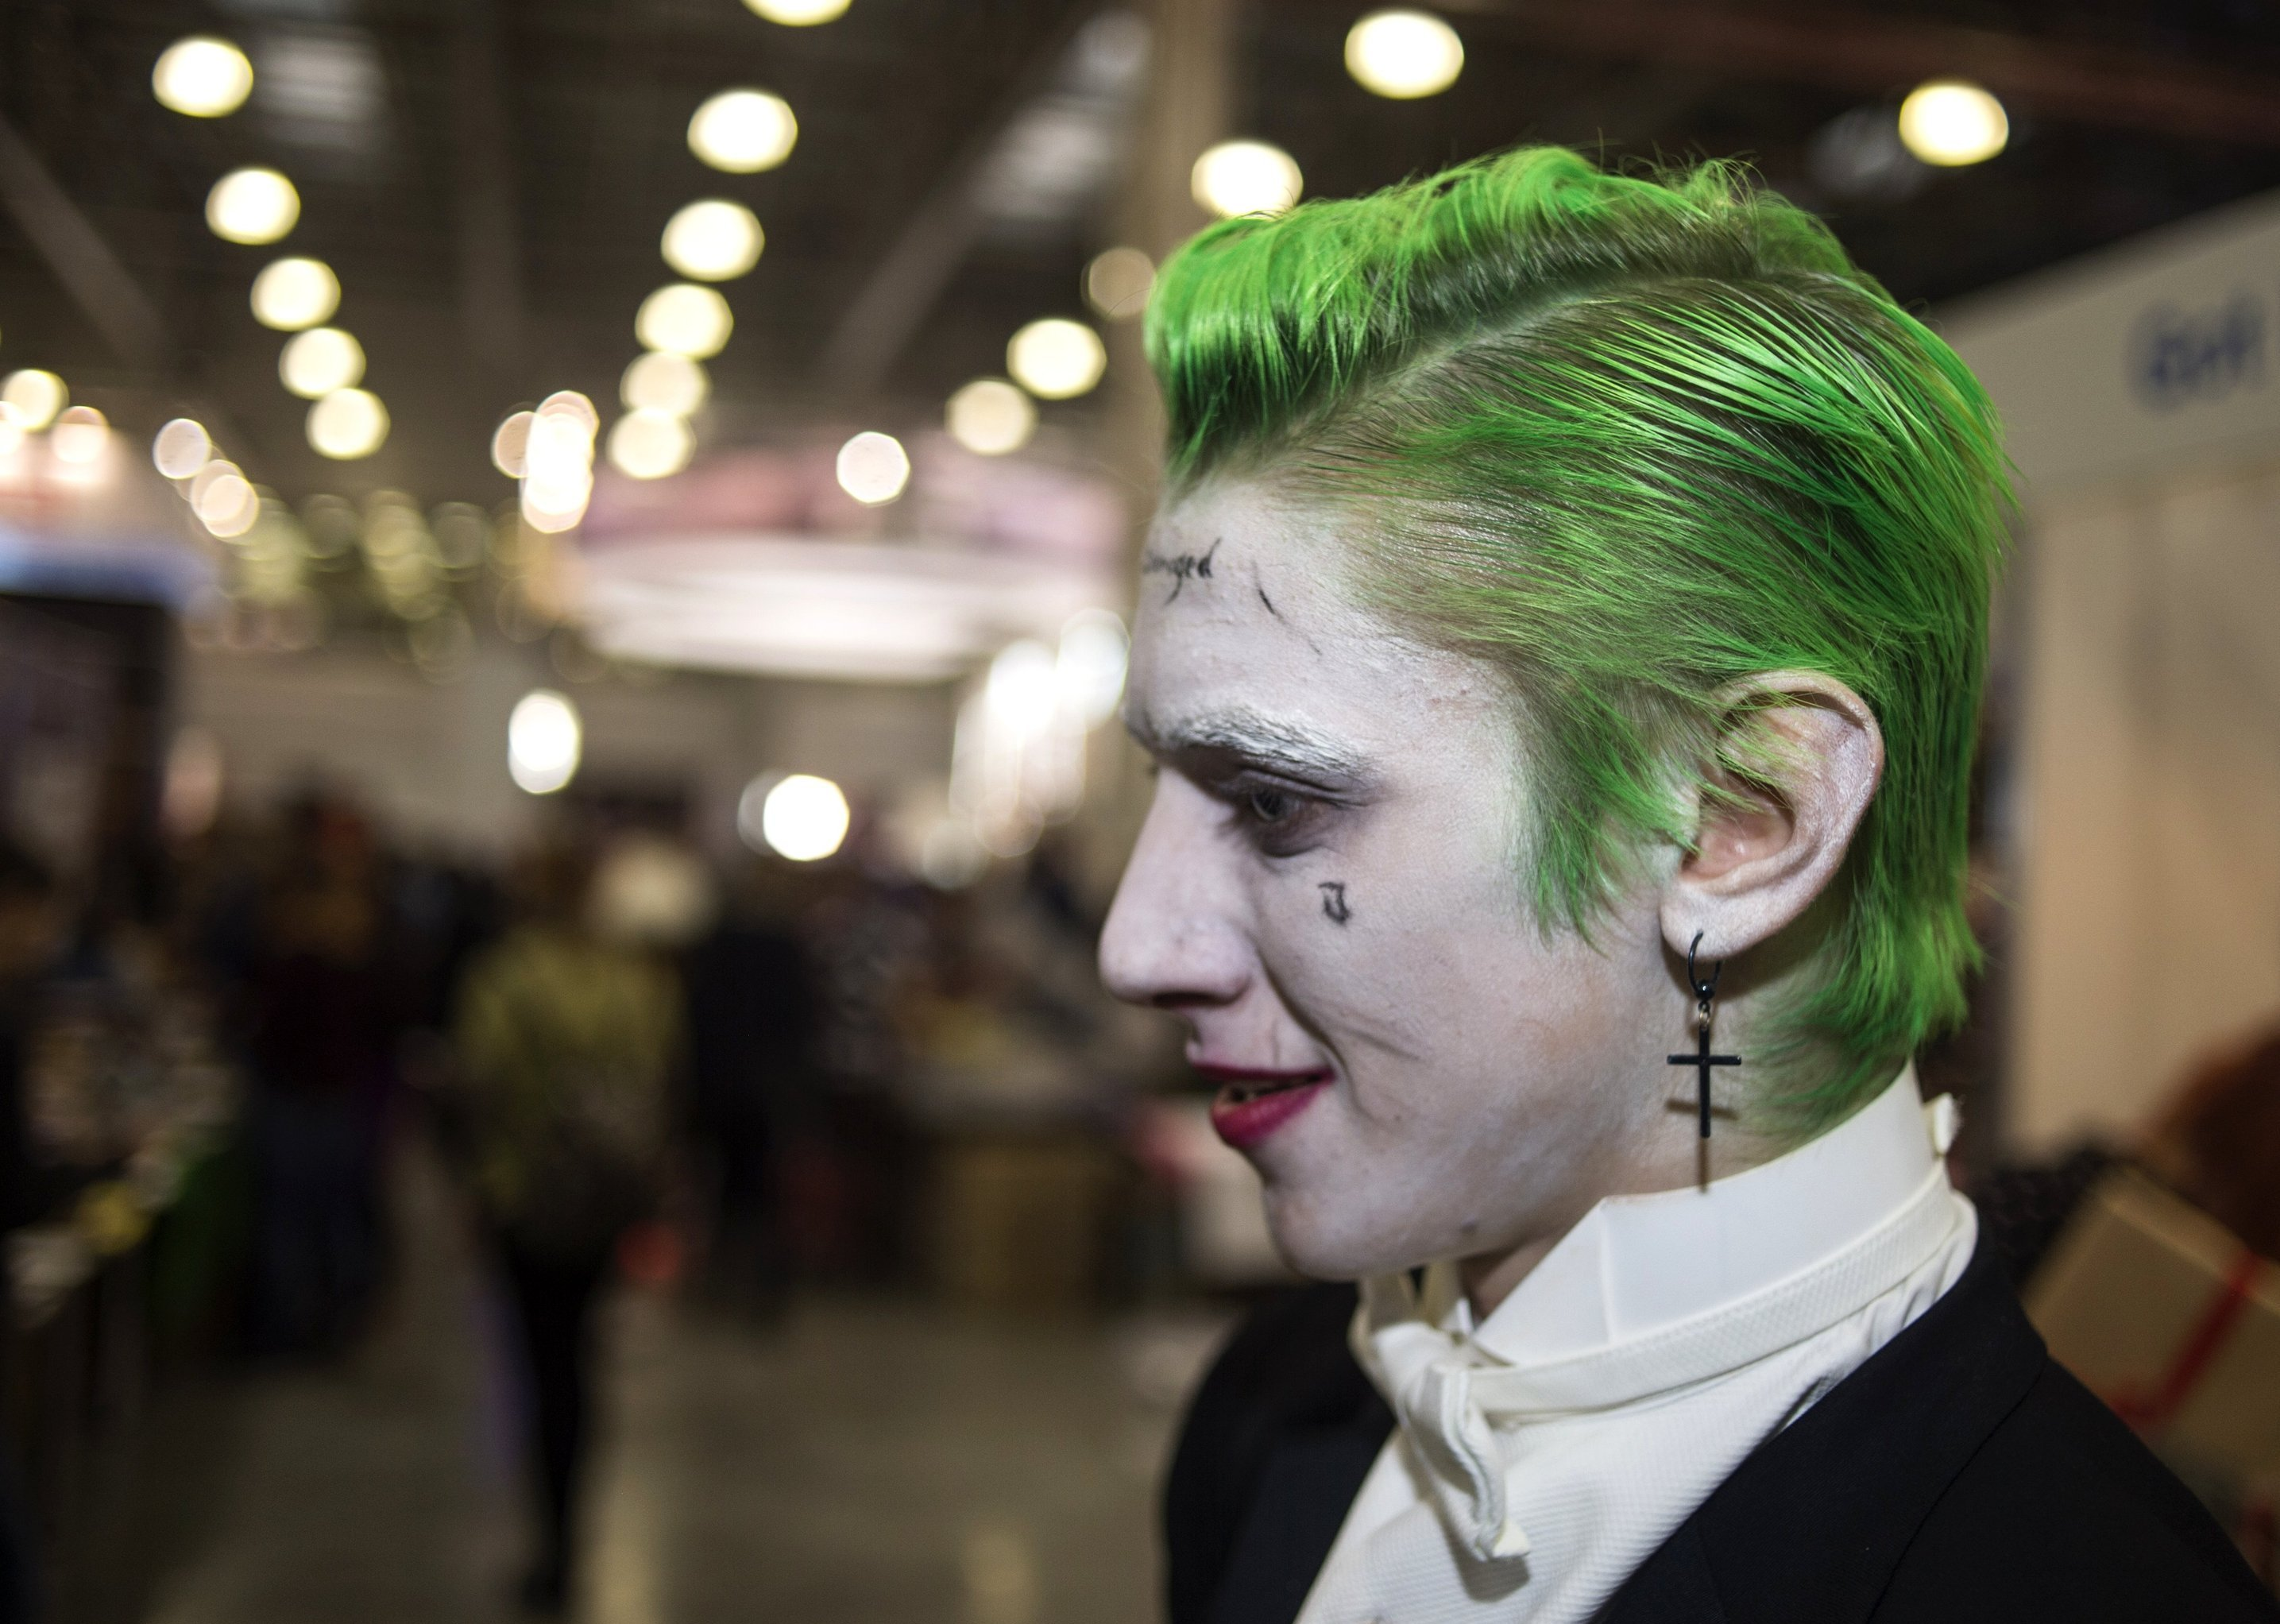 Ilya as the Joker, a character from the DC Comics universe